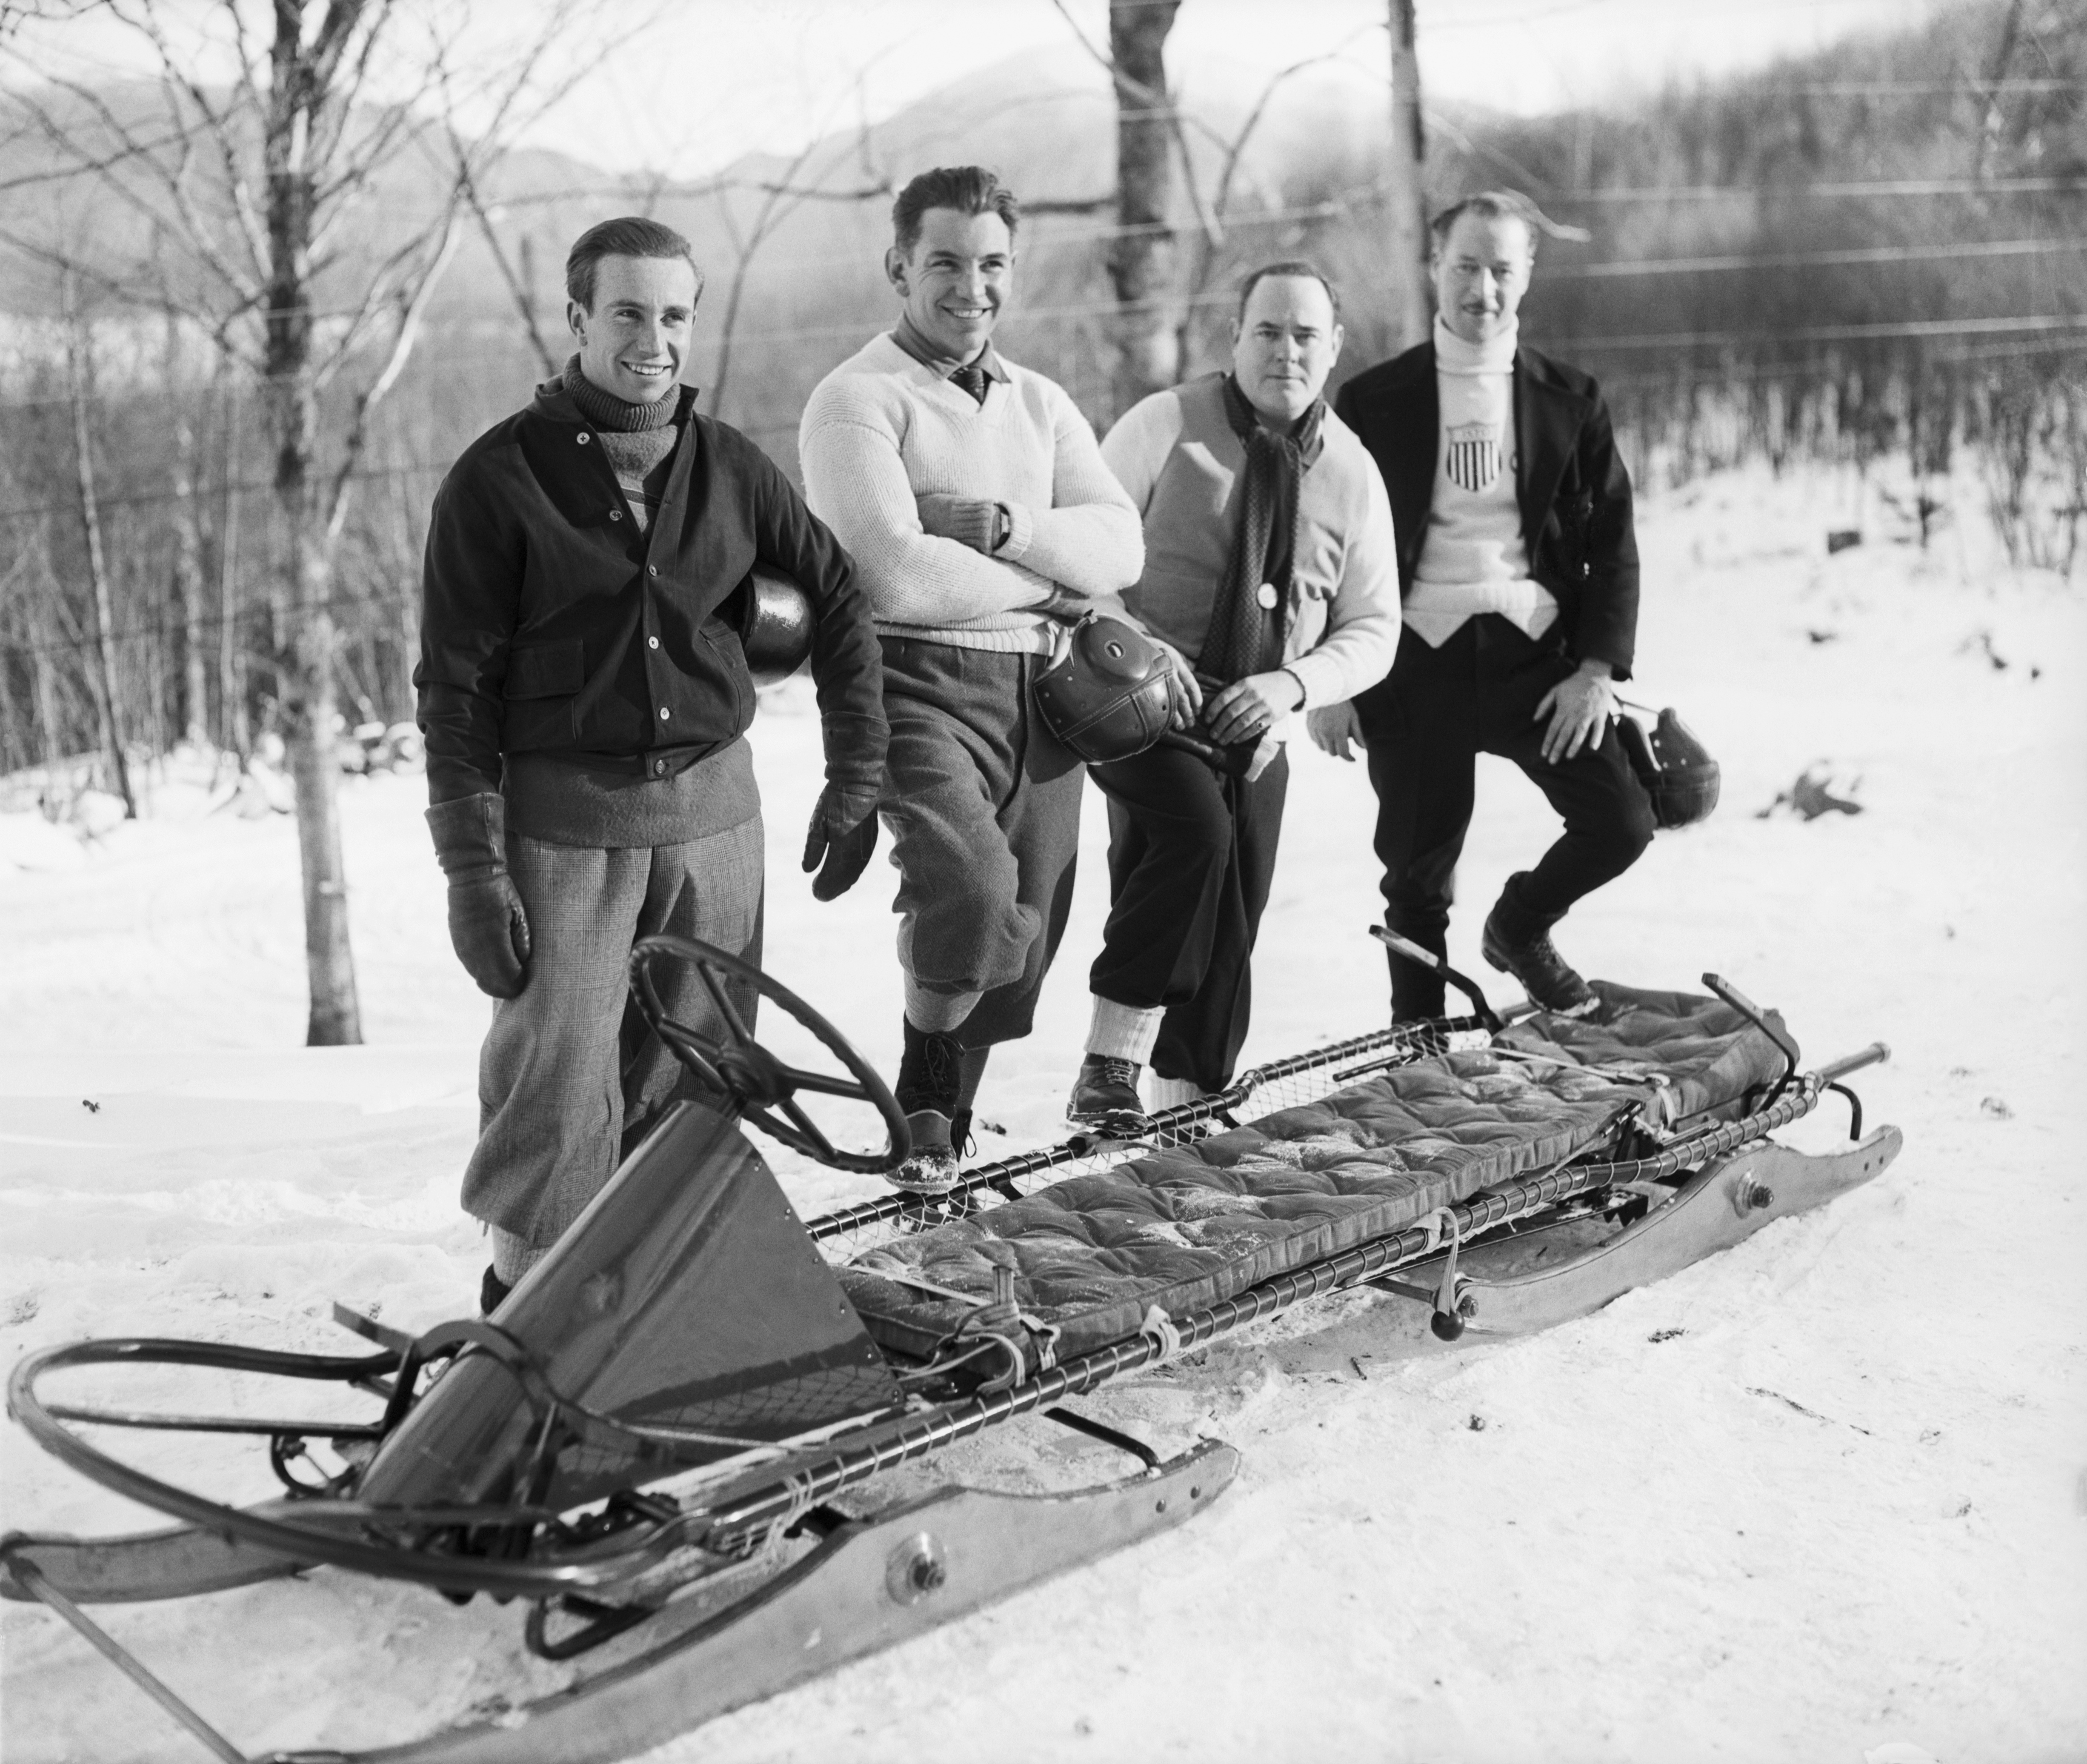 Fiske, Eddie Eagan, Clifford Gray and Jay O'Brien, who will compete in the 1932 Winter Olympics, also members of the 1928 Champion Team. Bettmann—Bettmann Archive